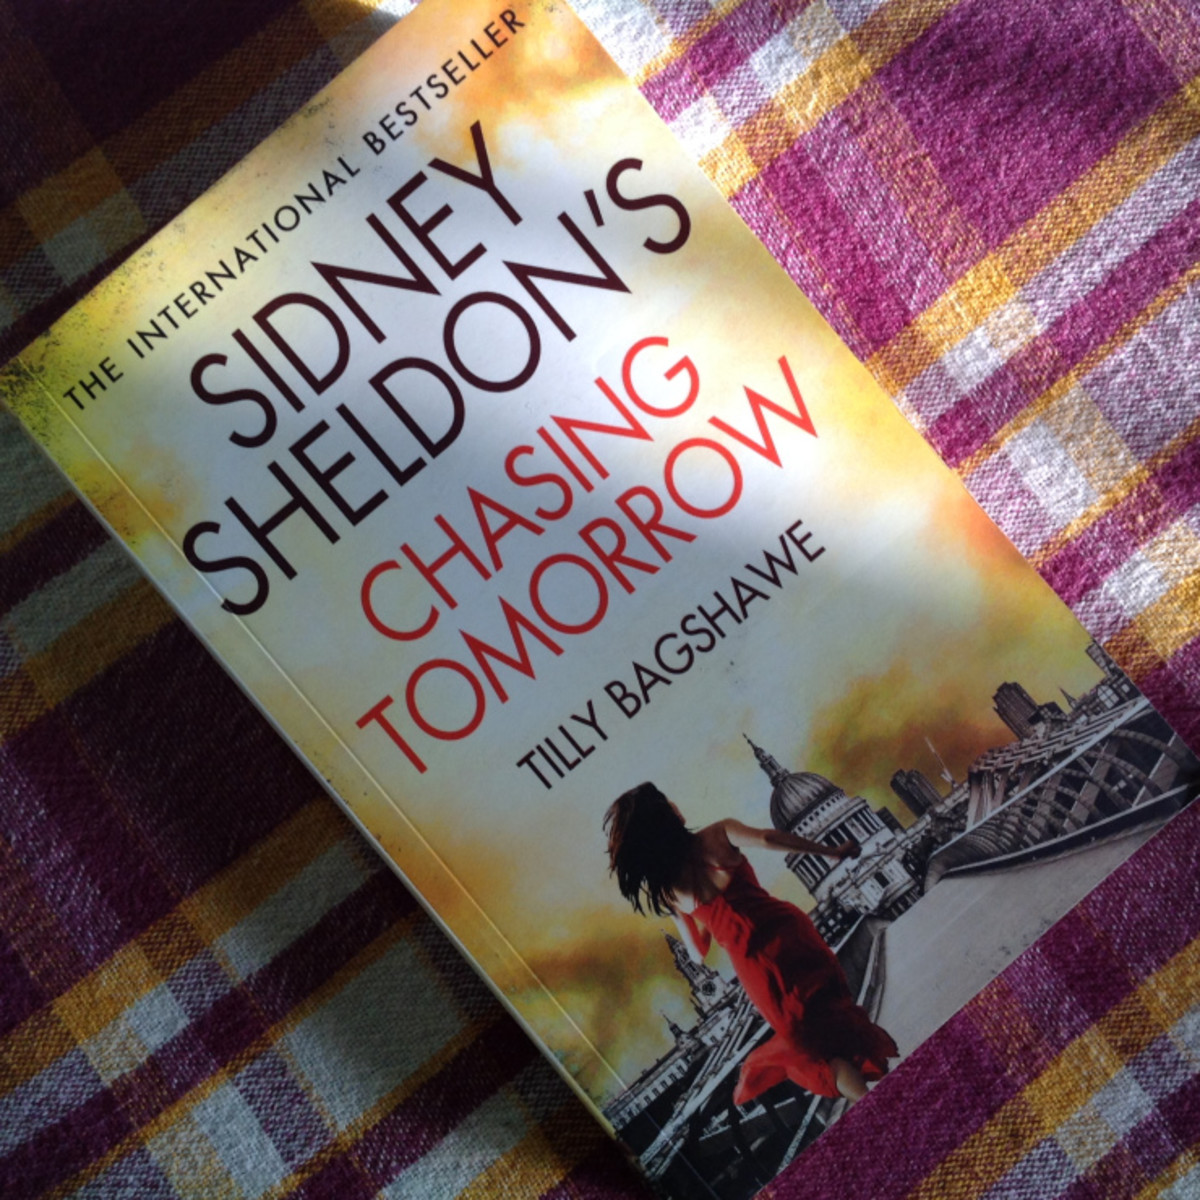 Book Review: Sidney Sheldon's Chasing tomorrow